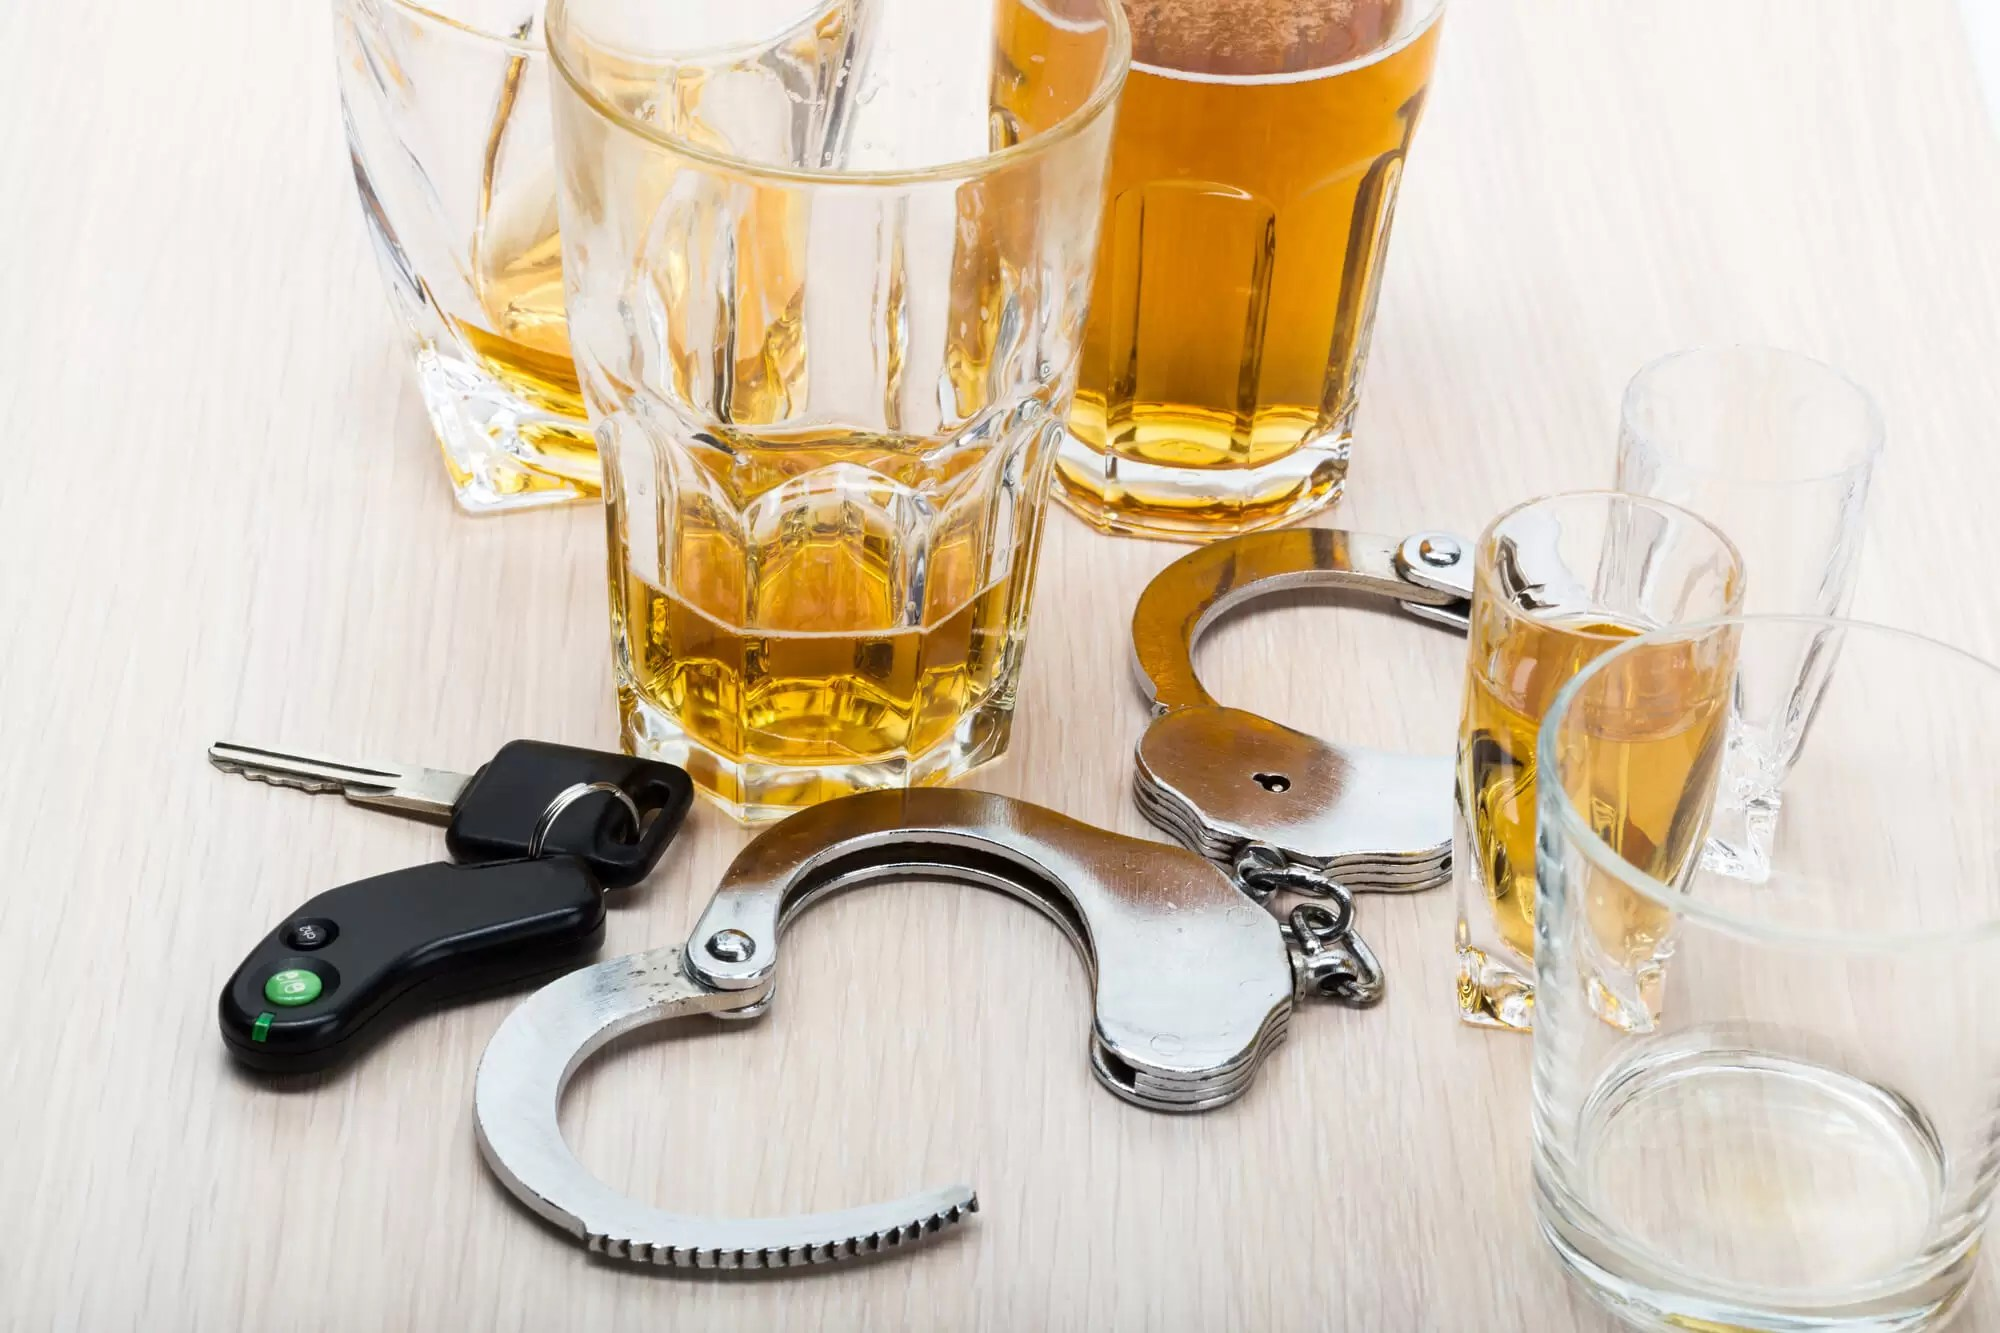 DUI – Why Hire an Experienced Lawyer?